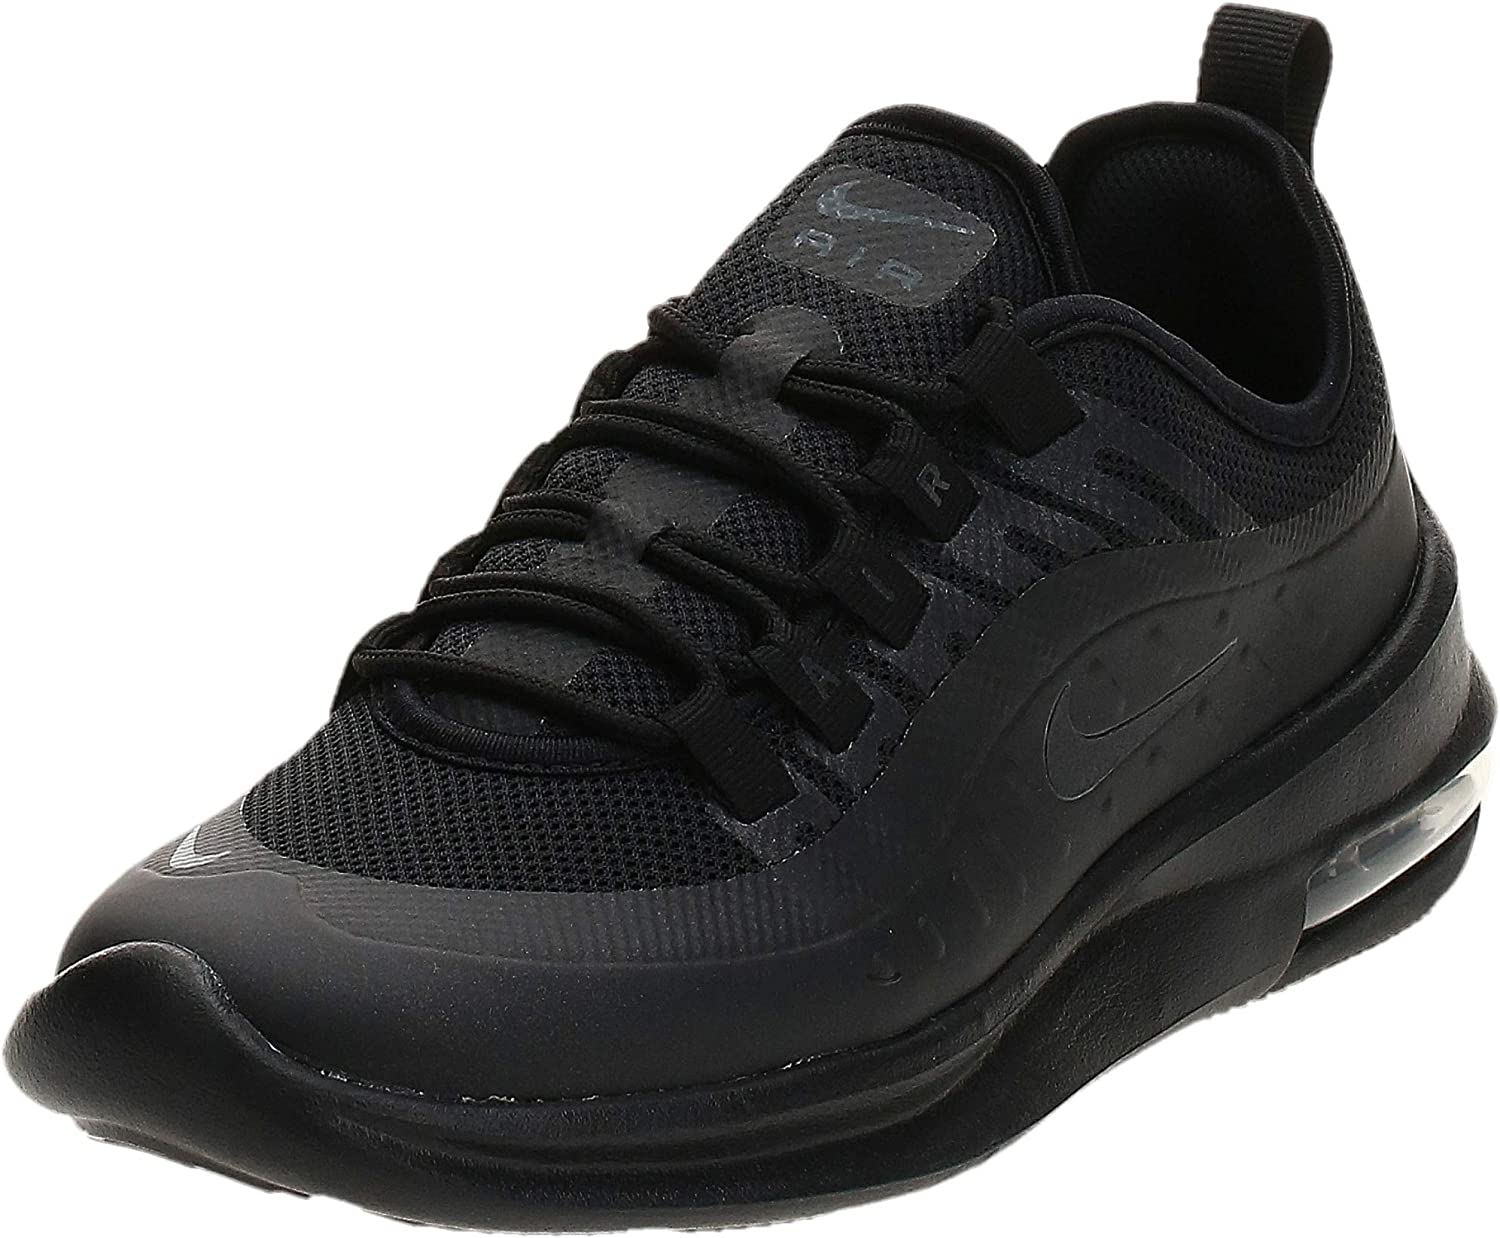 Nike Women's Air Max Axis Running Shoe, Black/Anthracite